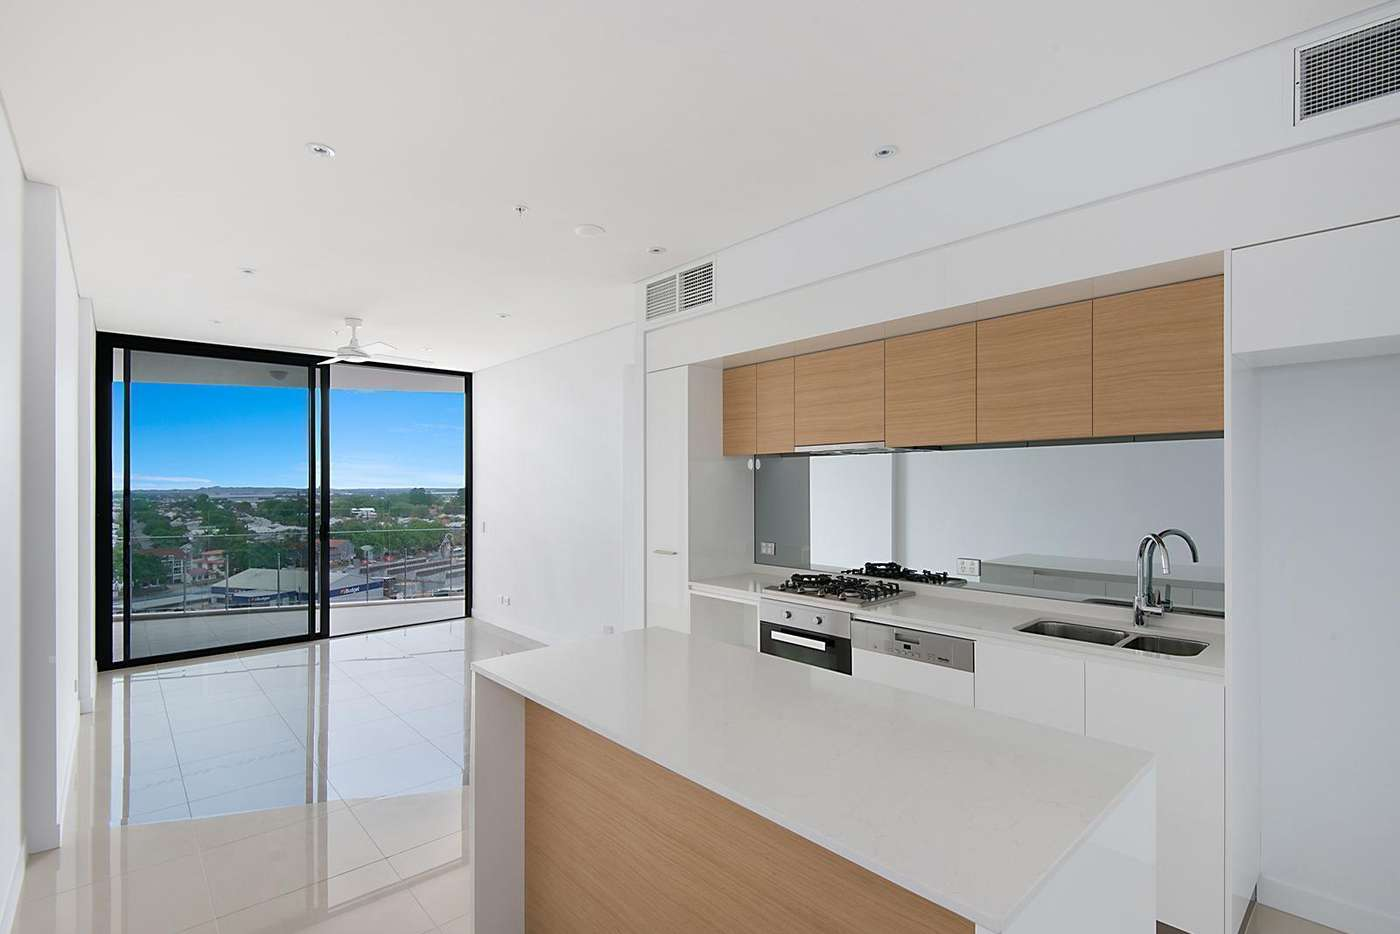 Main view of Homely apartment listing, 3047/33 Remora Road, Hamilton QLD 4007